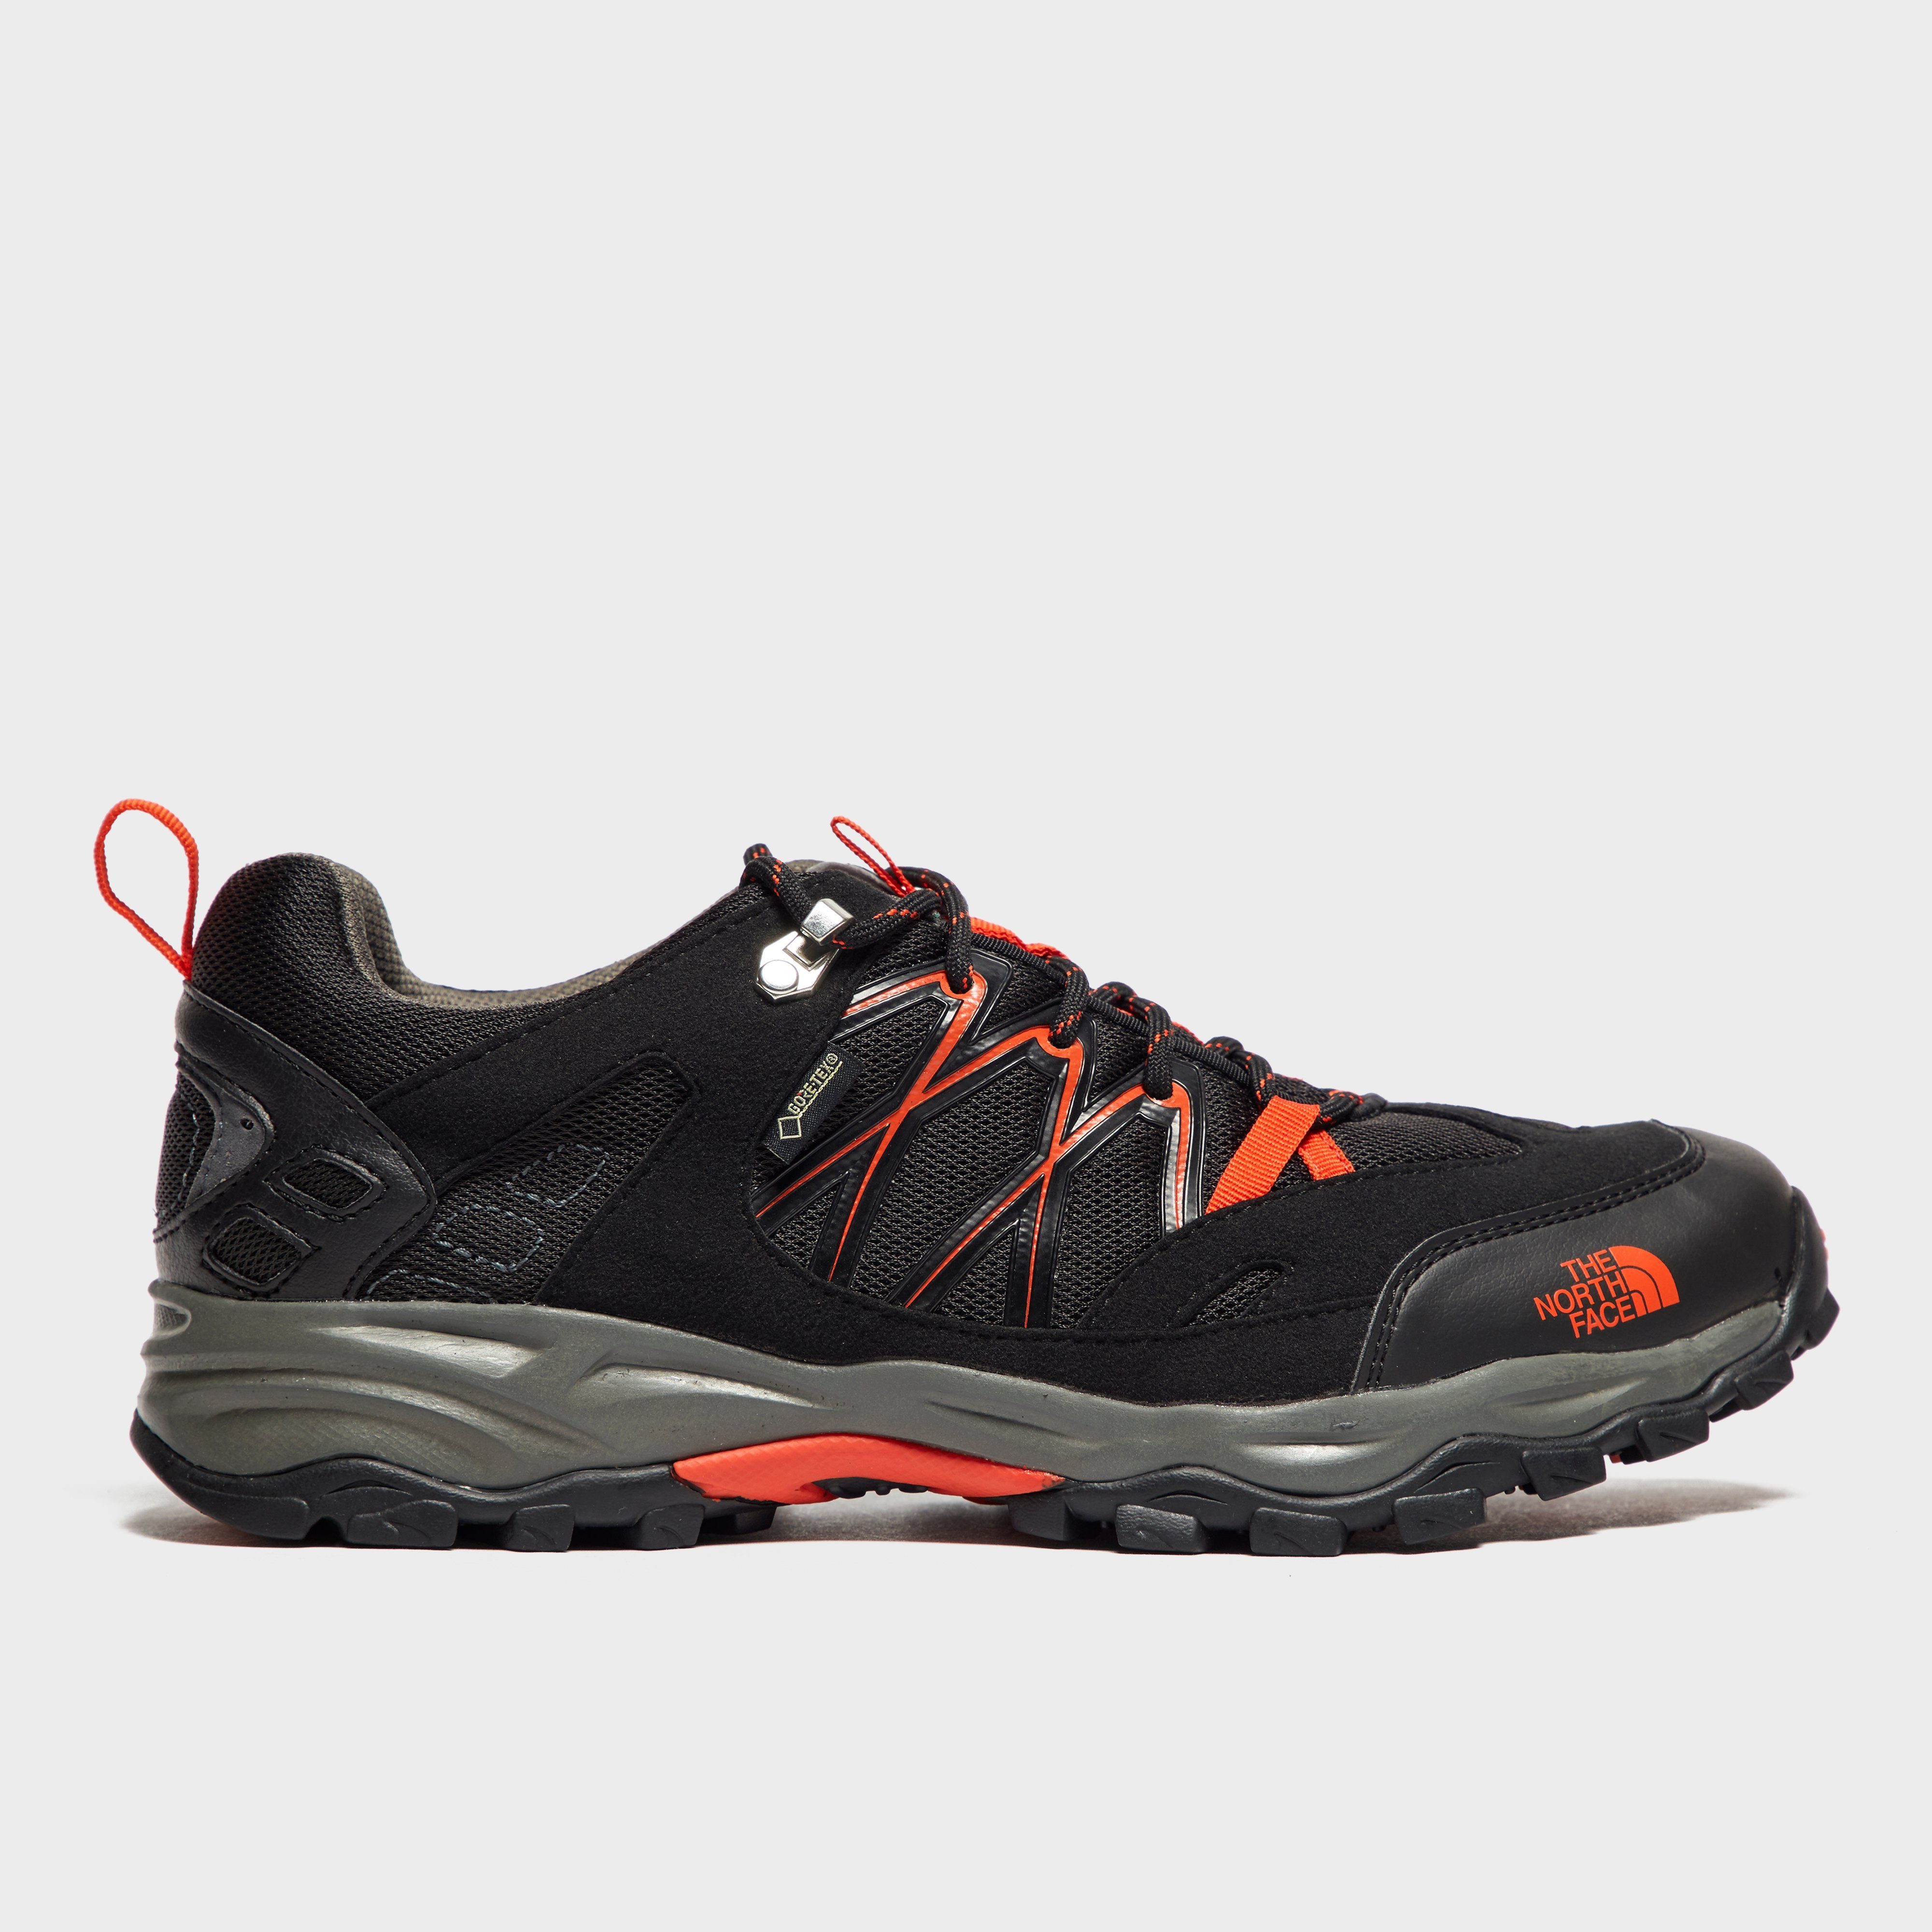 THE NORTH FACE Men's Terra GORE-TEX Shoe